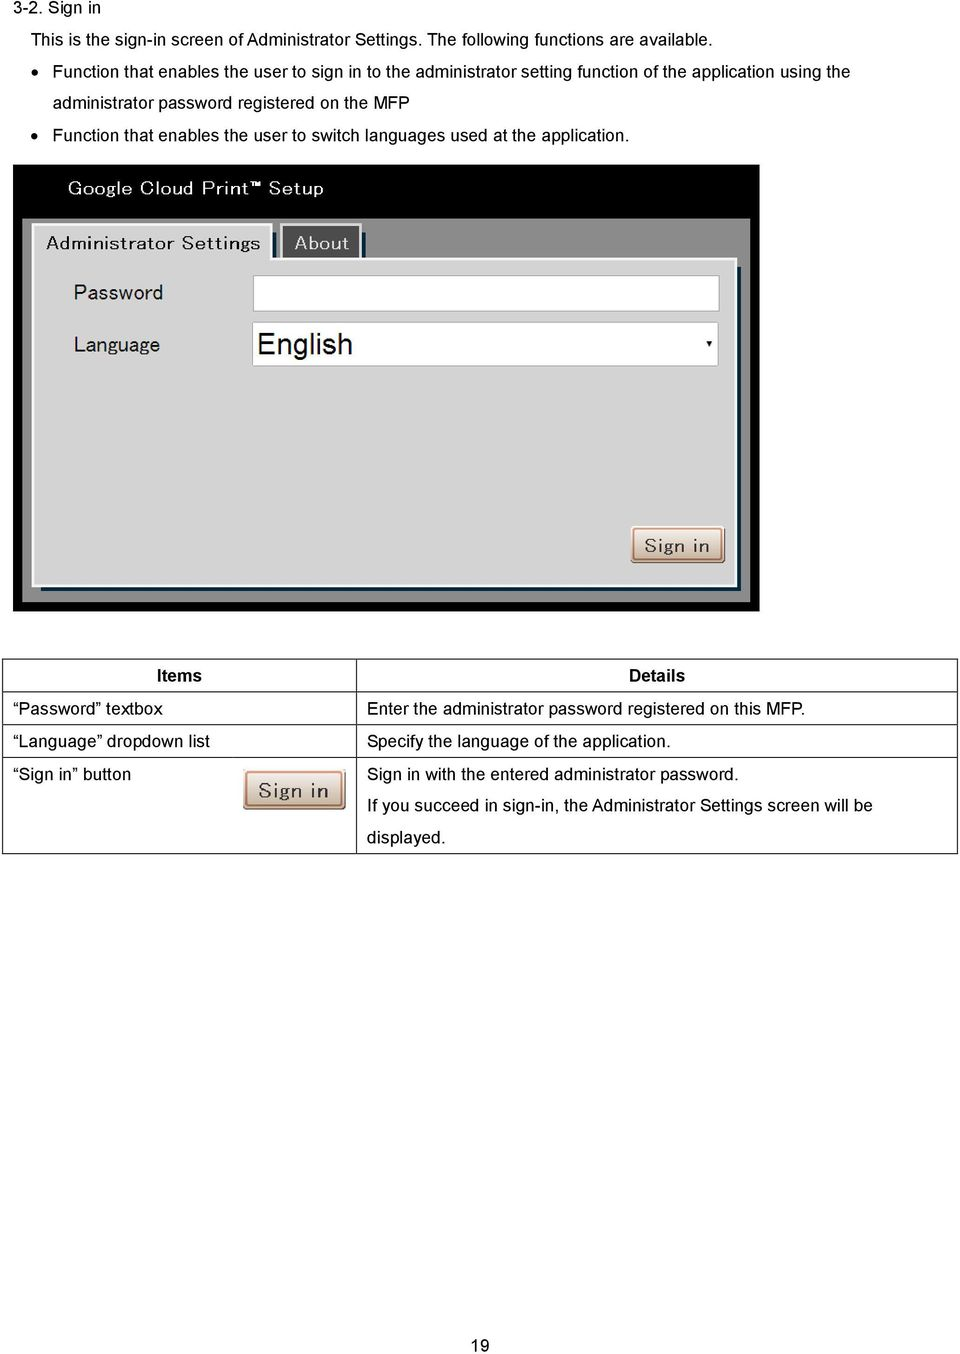 Function that enables the user to switch languages used at the application.